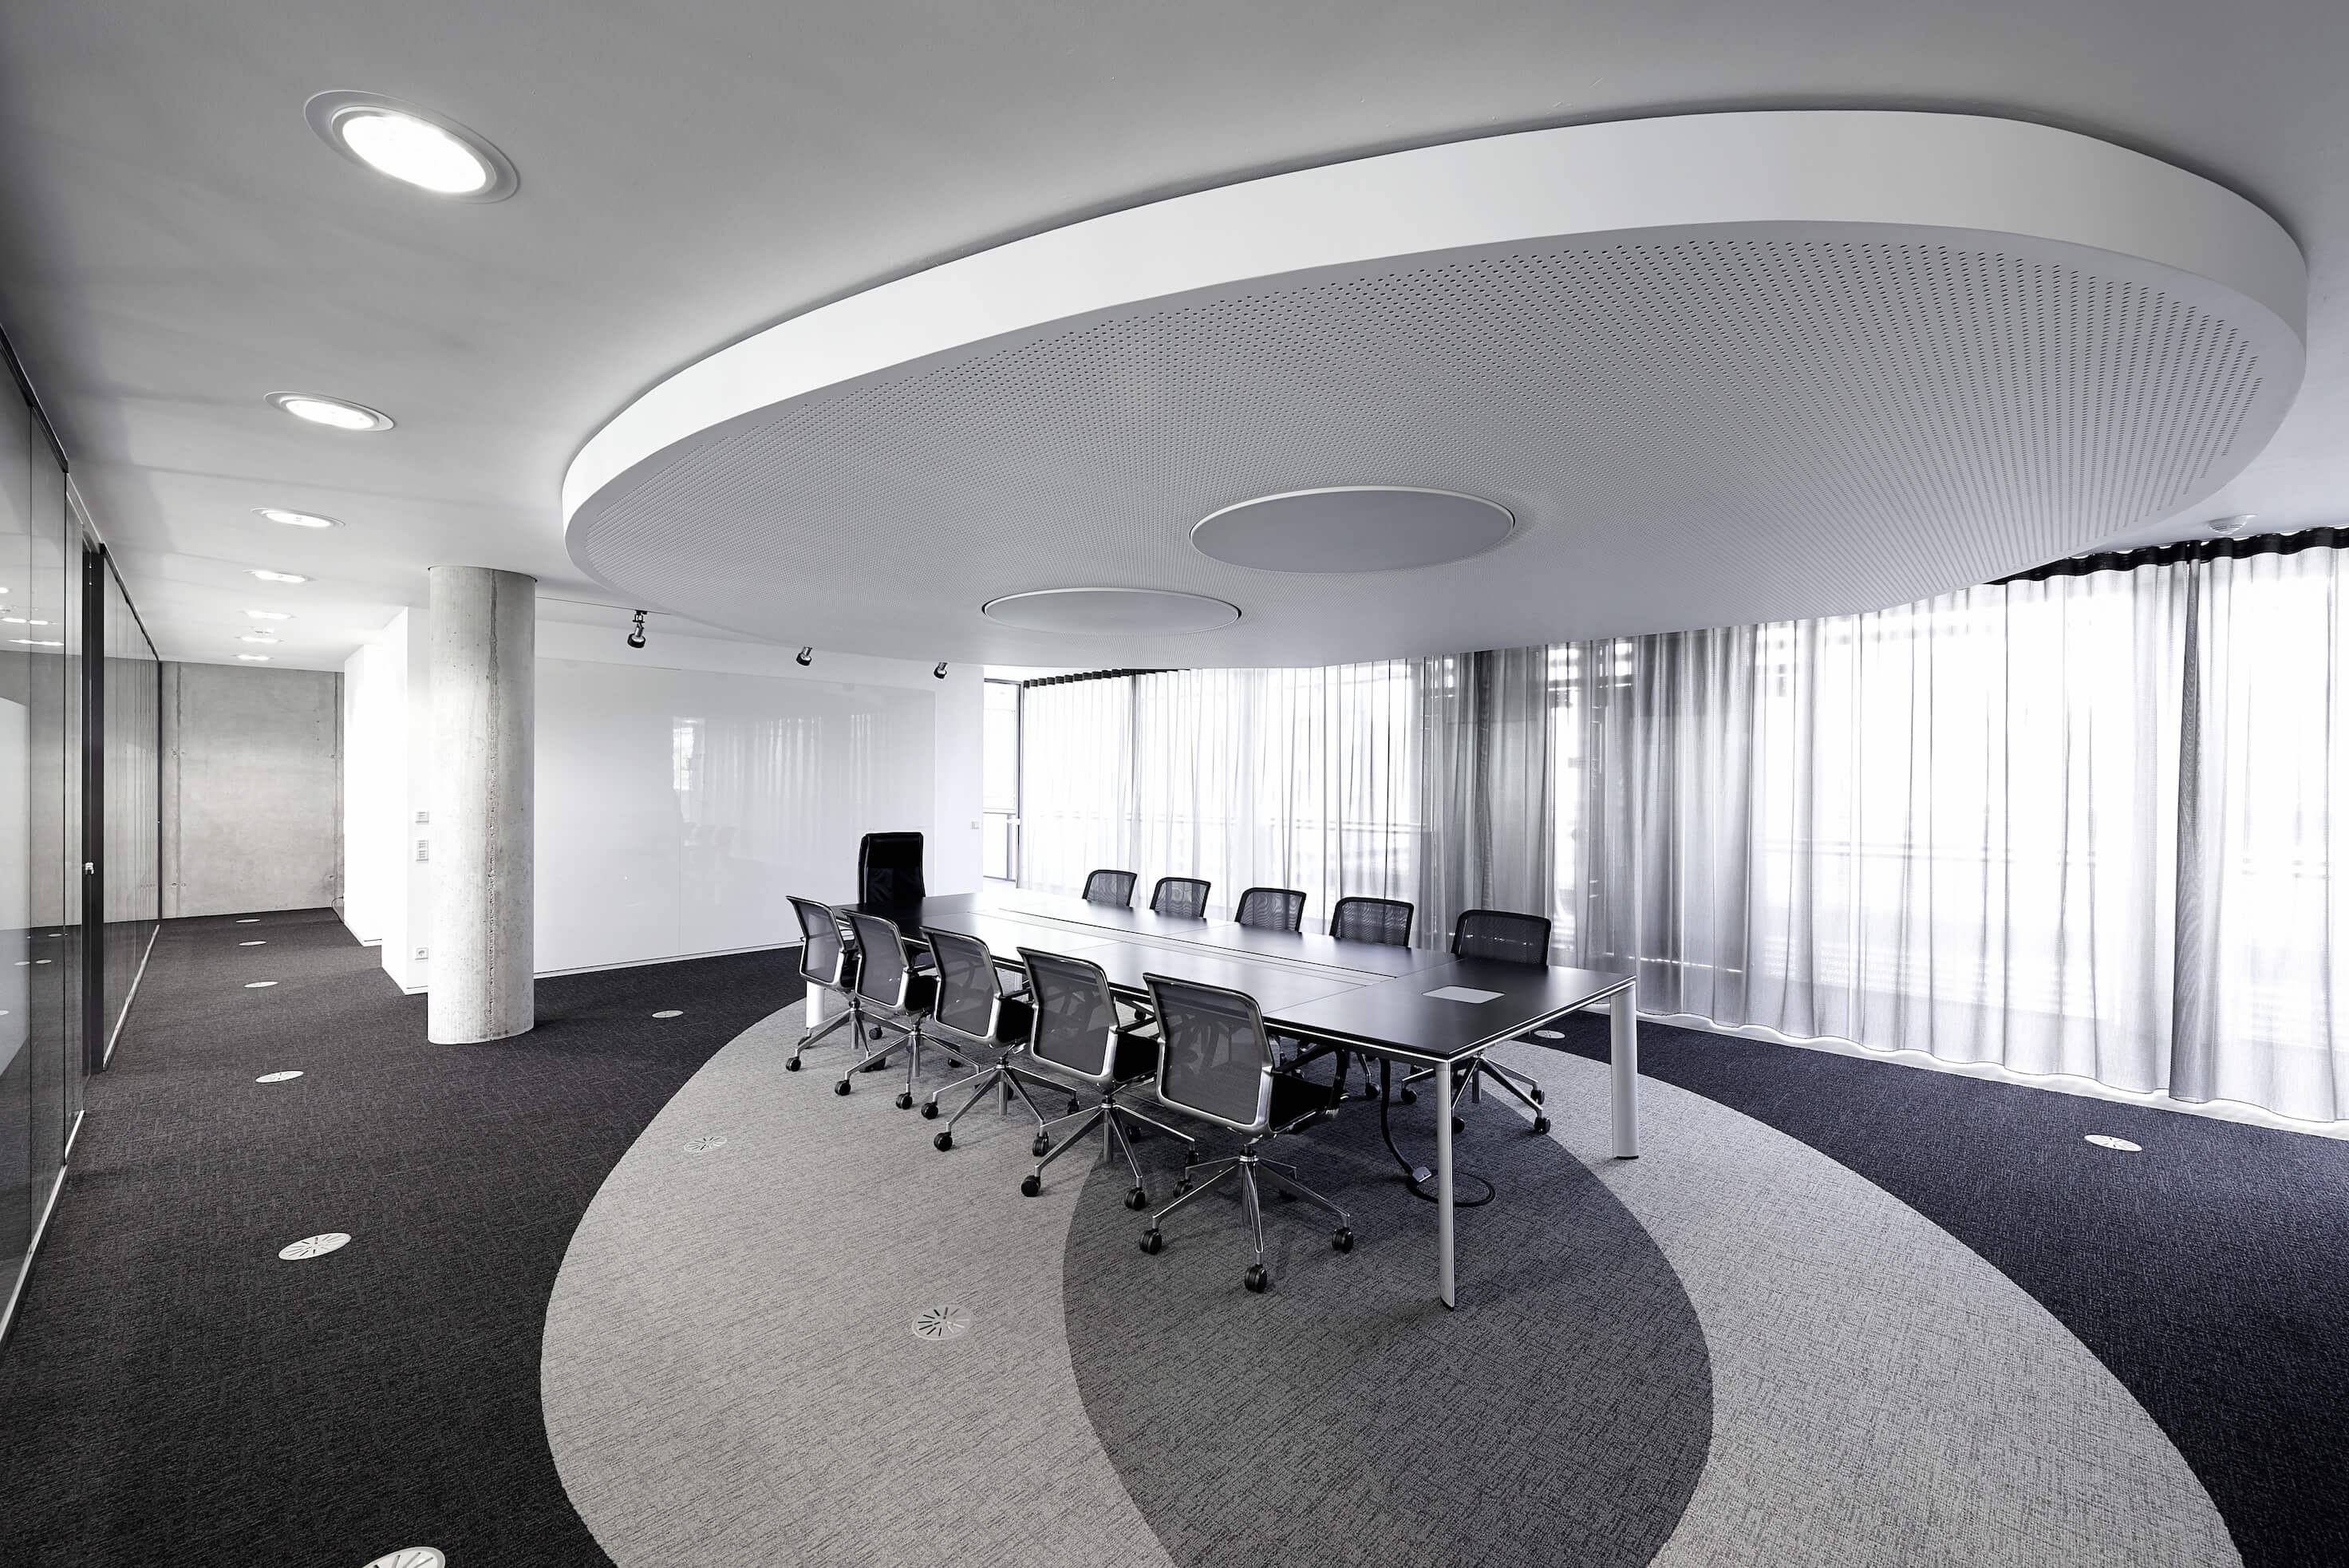 Here we see a large, open conference room with lengthy black and metal textured table standing beneath an oval ceiling detail, mirrored on the carpet design. Again, floor to ceiling glass panels wrap the space, here seen with curtains for privacy and shade.